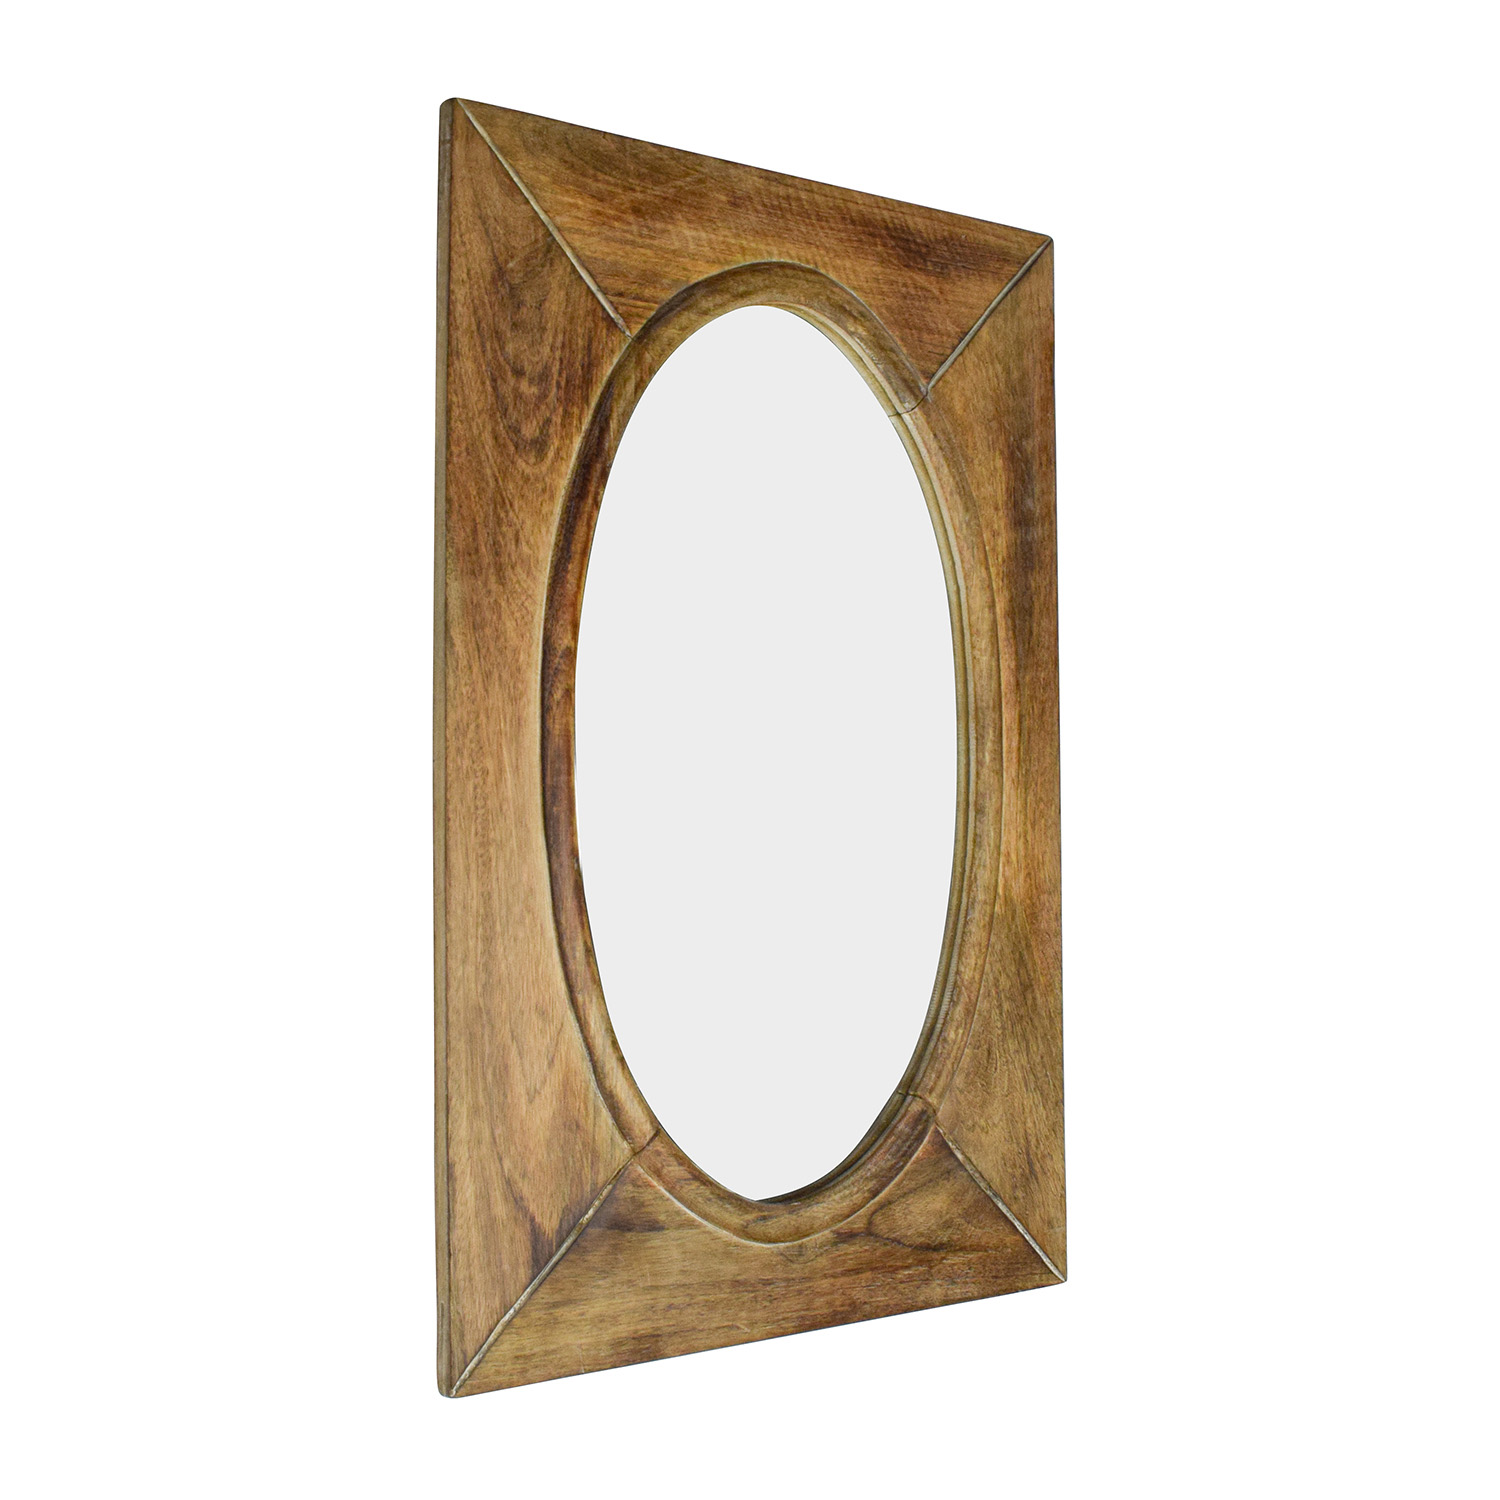 Oval Mirror Wood Frame 64 Off World Market World Market Rustic Wood Shandi Oval Mirror Decor